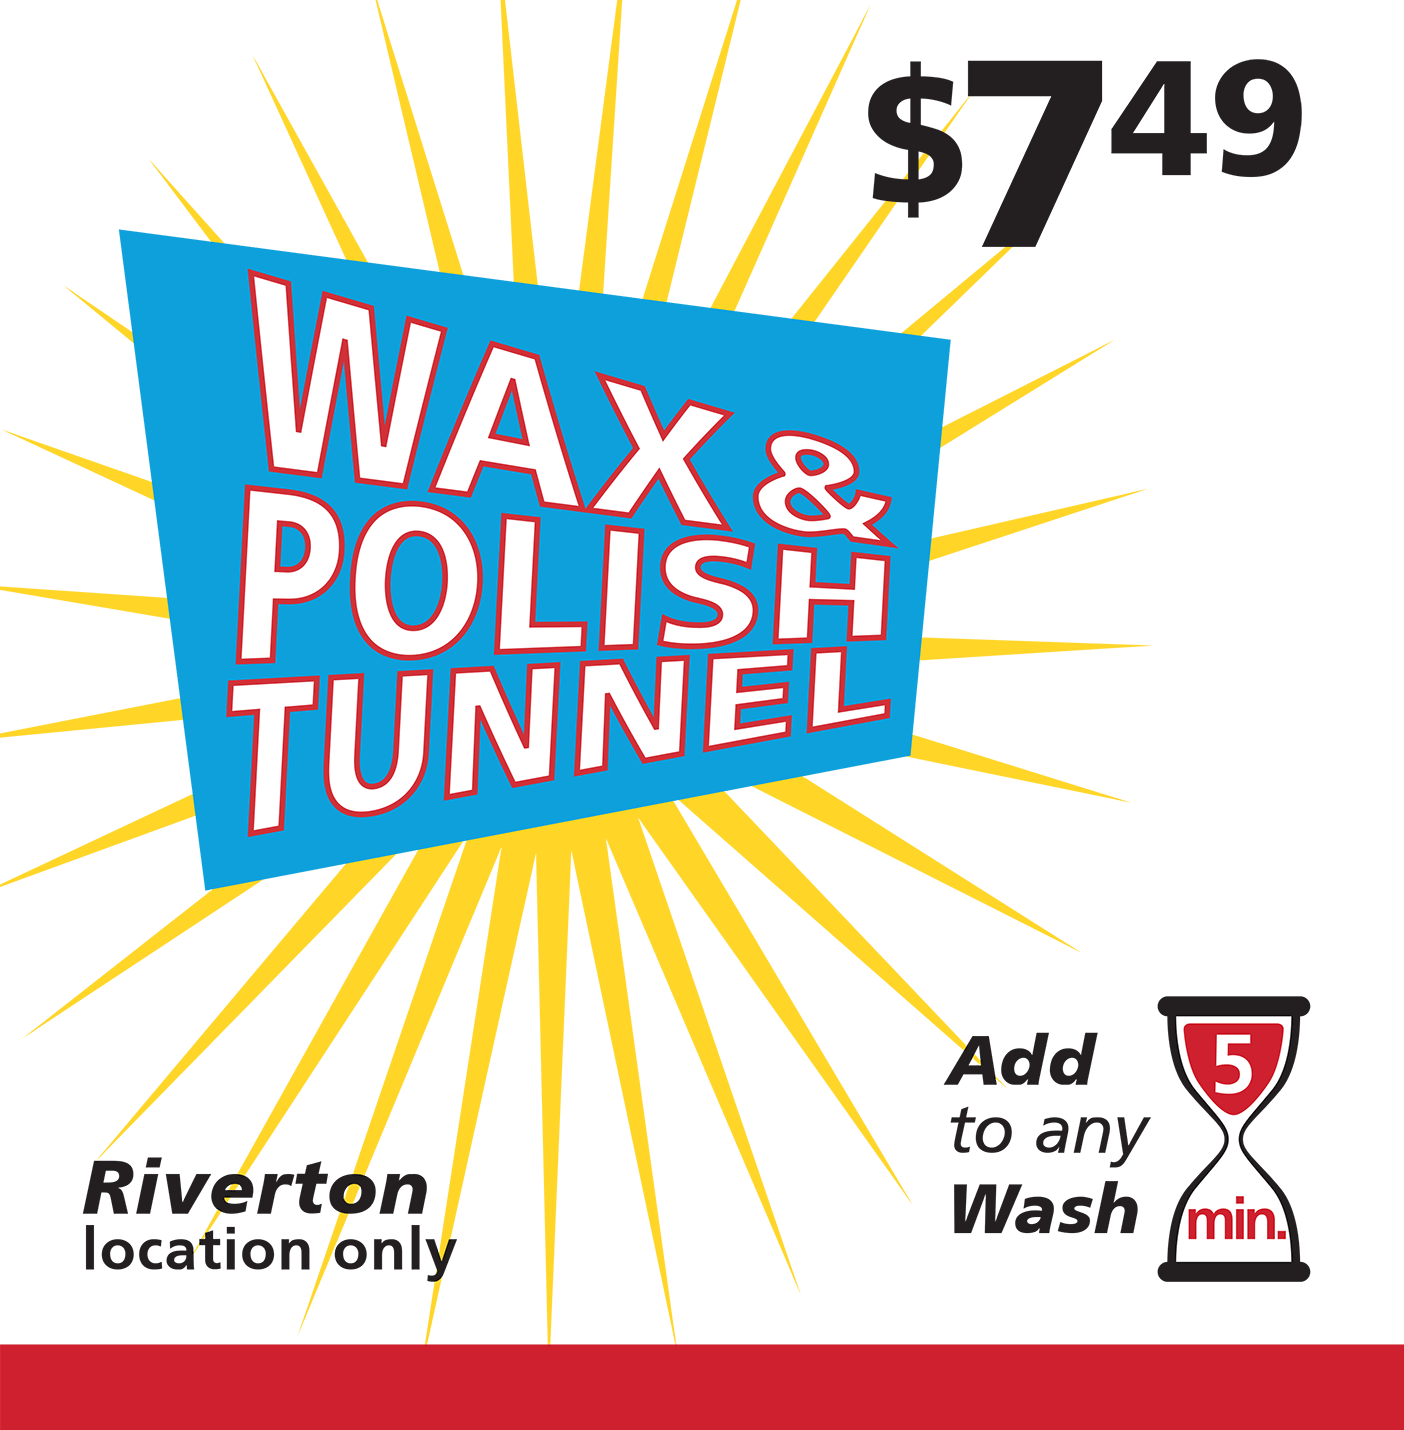 Wax and Polish Tunnel $7.49 add to any wash, Riverton location only